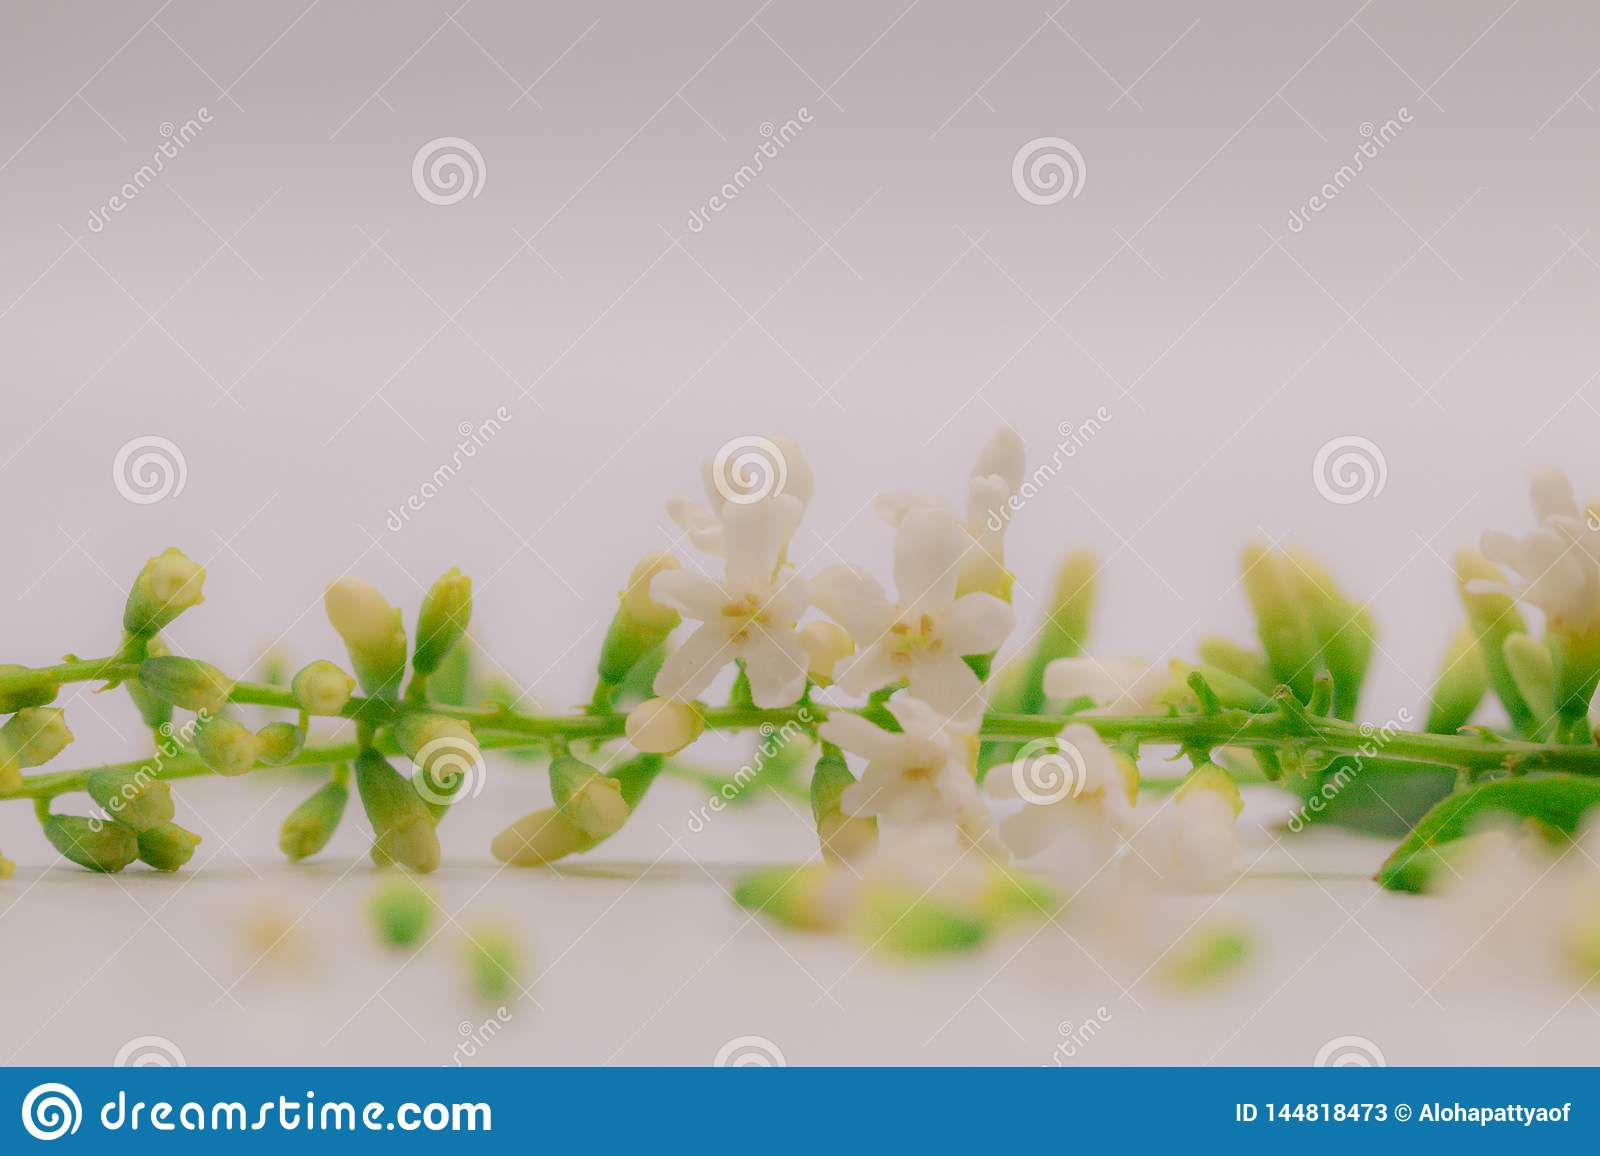 Selective focus Chinese Rose flower or Citharexylum Spinosum flowers on isolate white background.Common names include Florida fidd